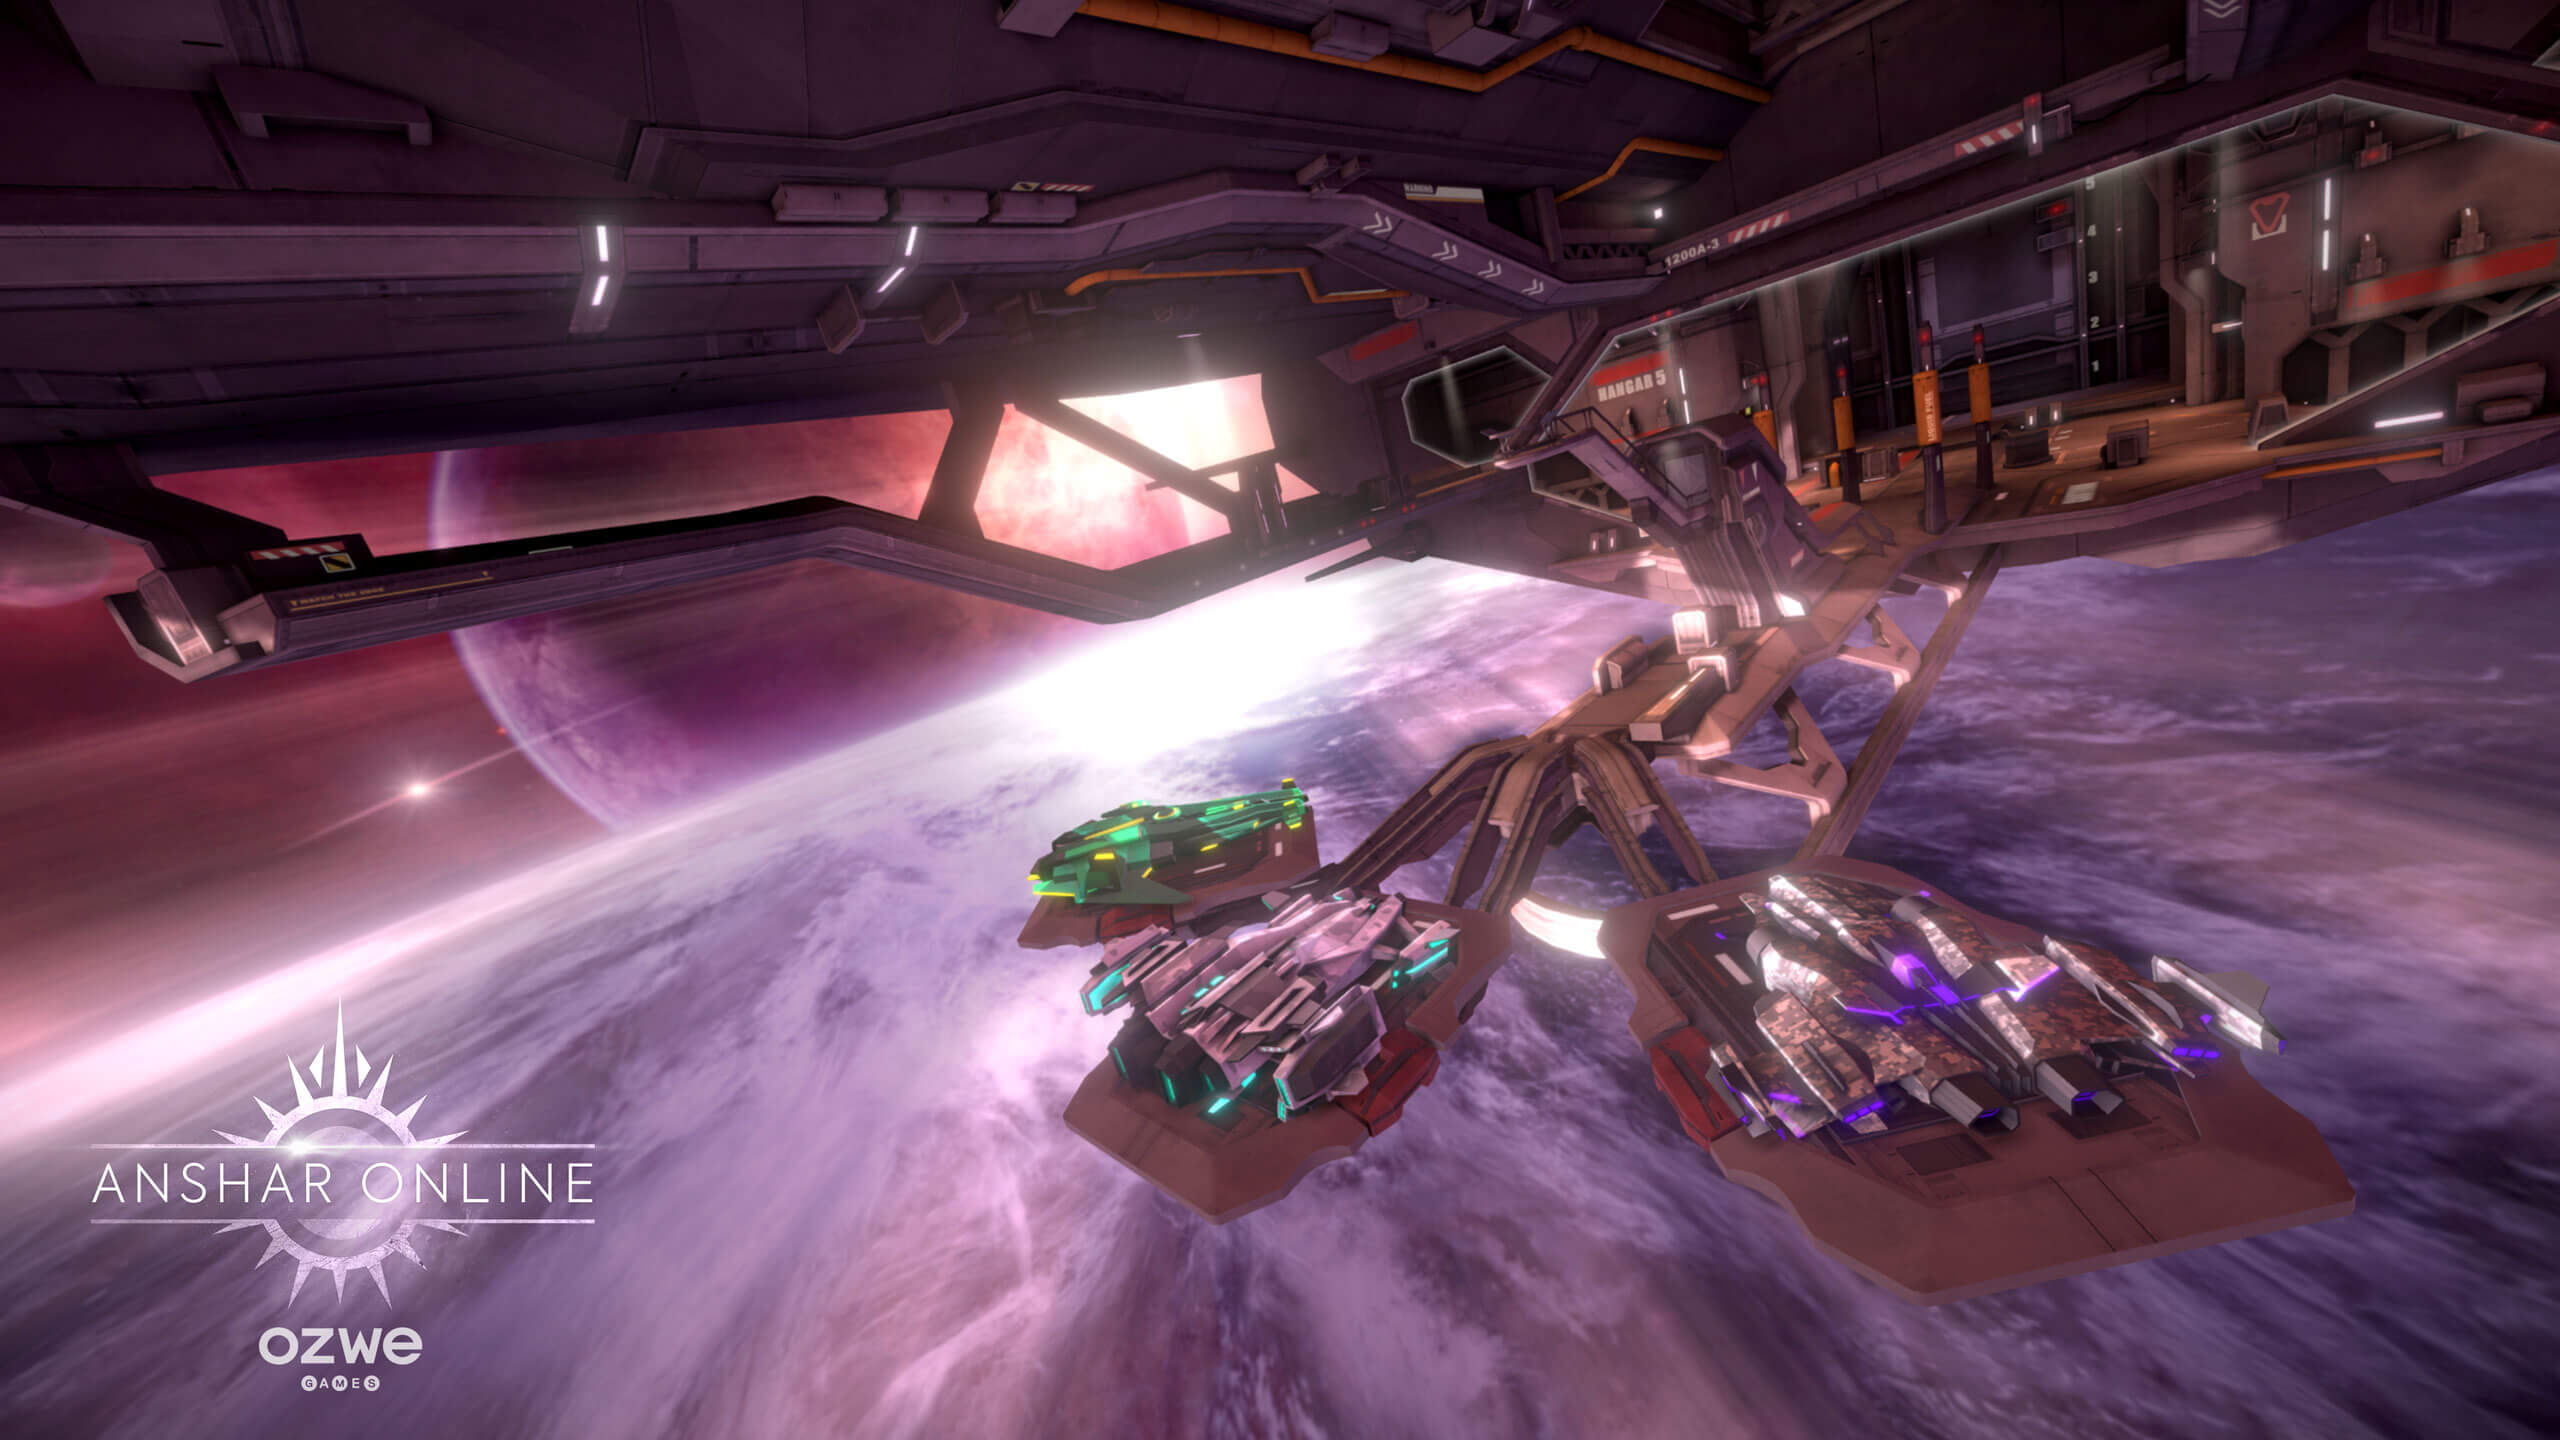 Anshar Online | VR Space Shooter - OZWE Games